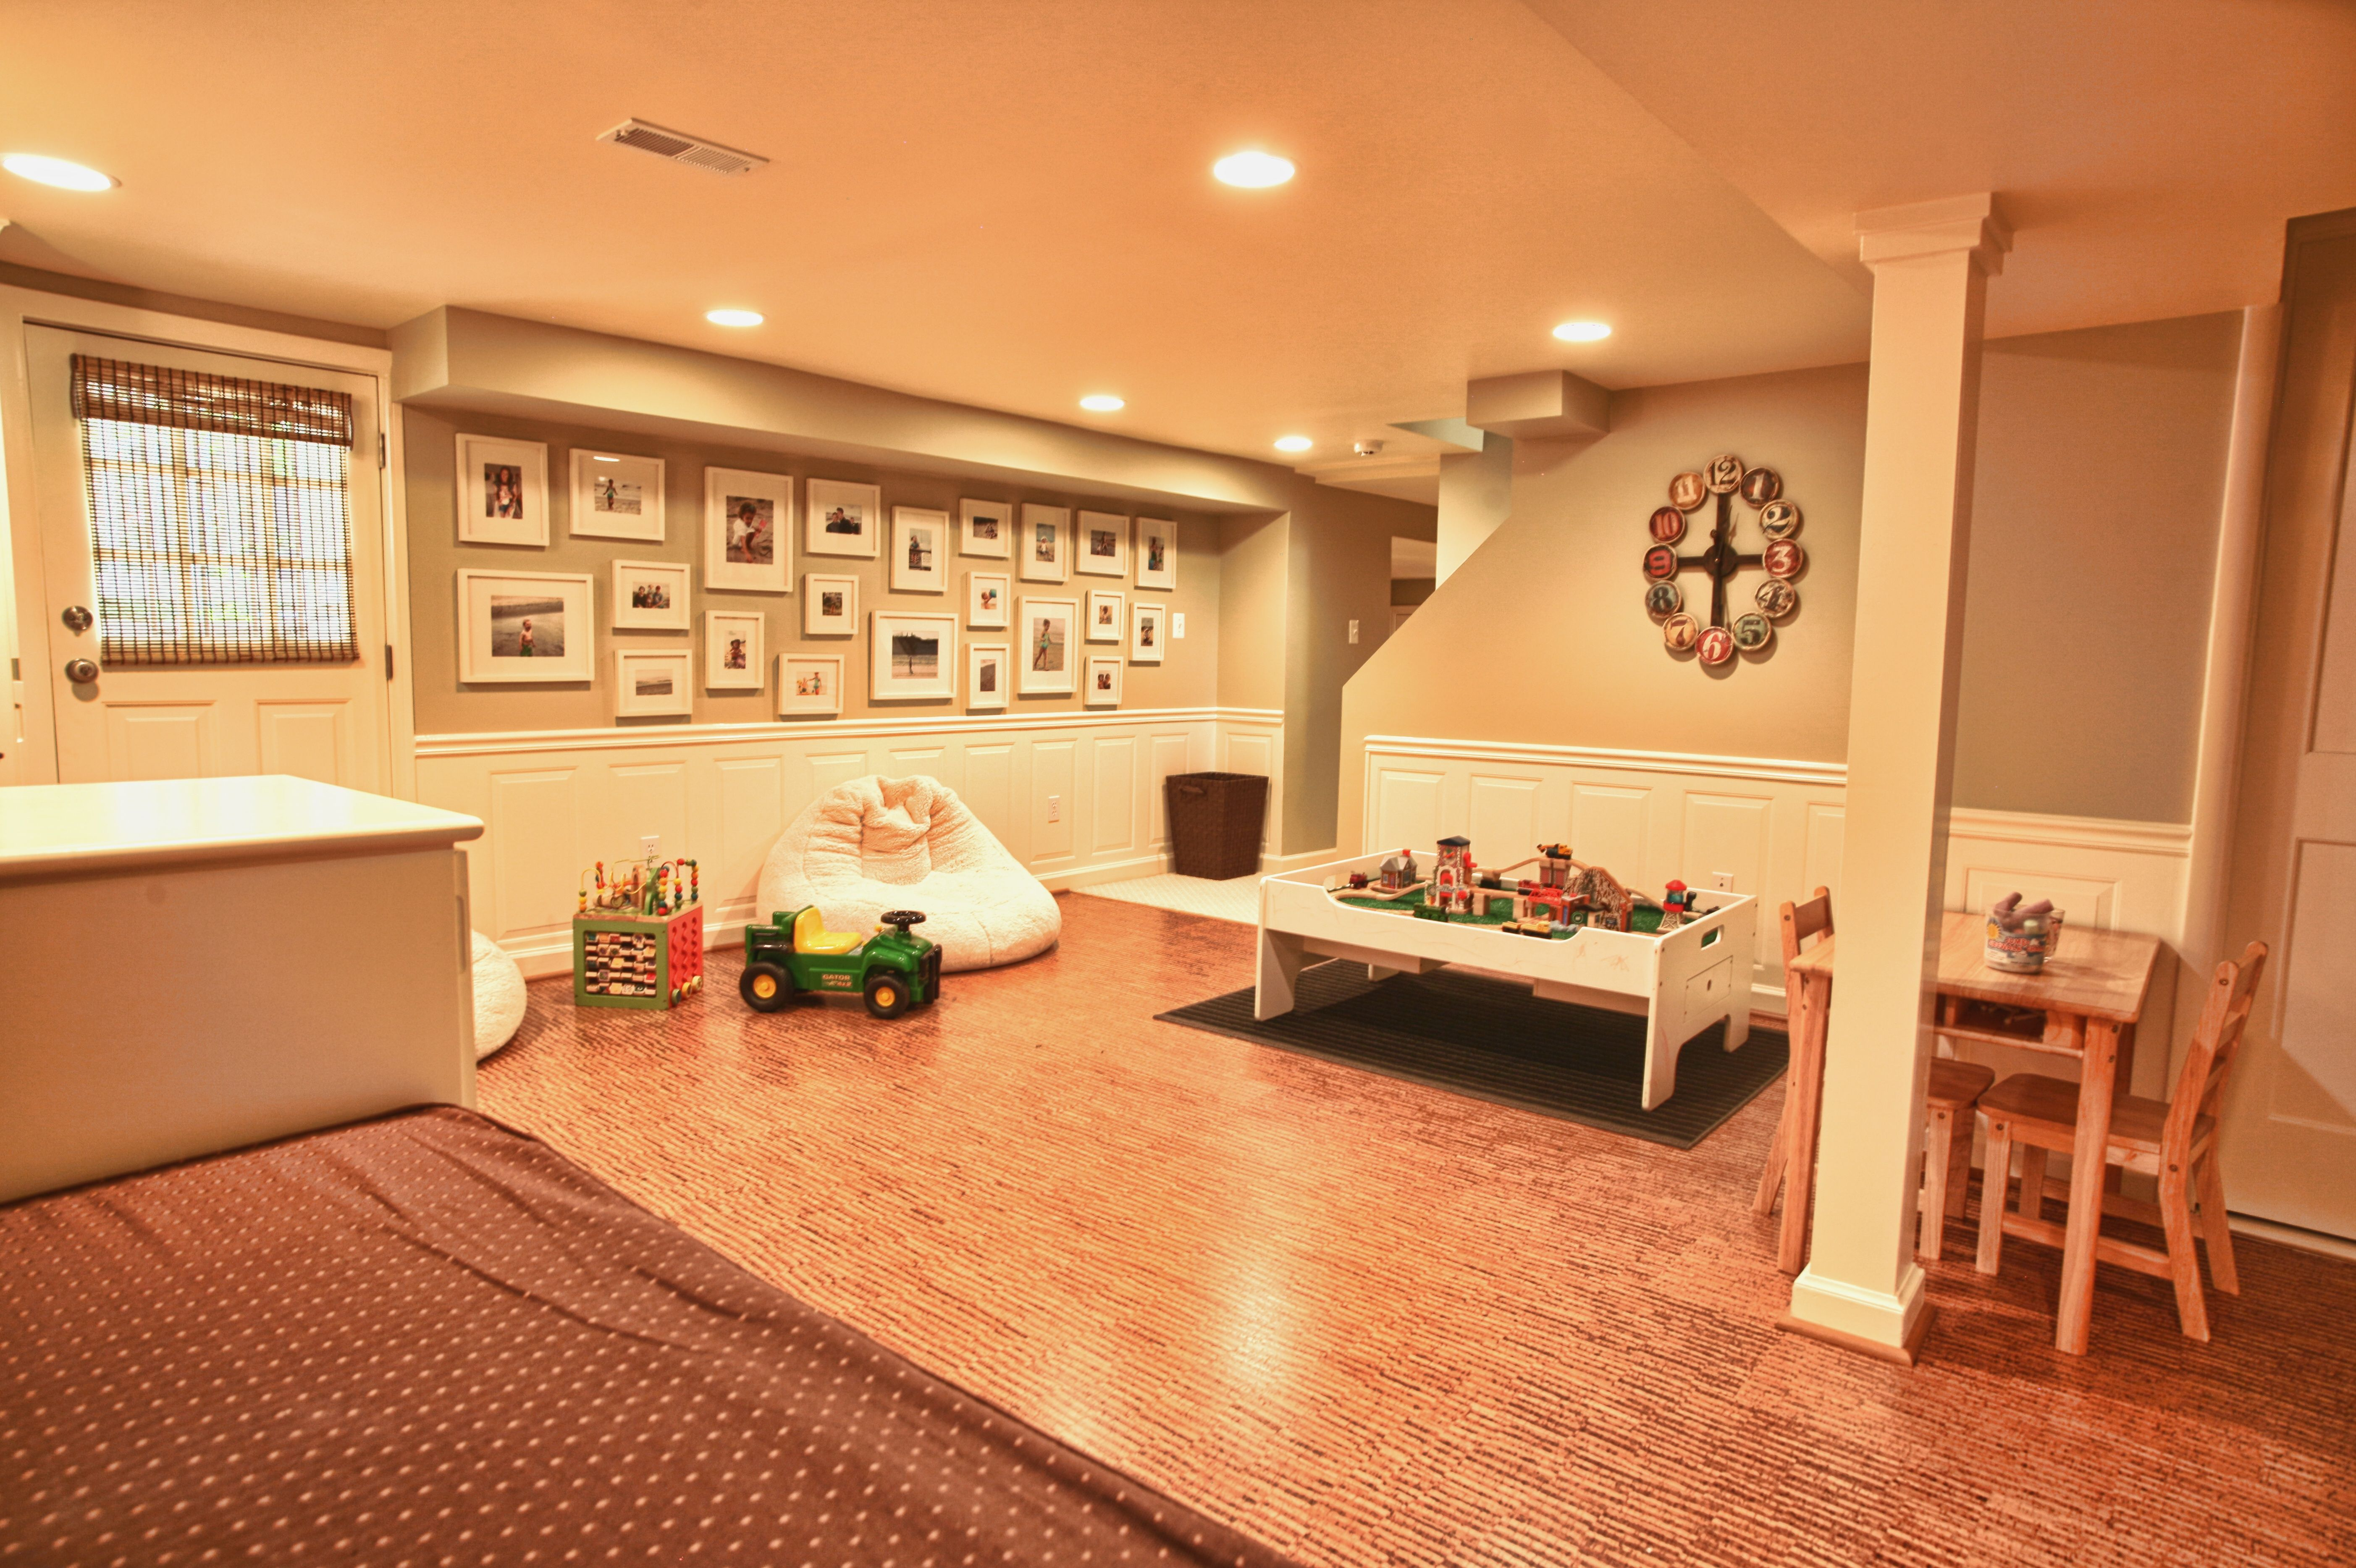 Basement Playroom Layout   Http://www.interior Design Mag.